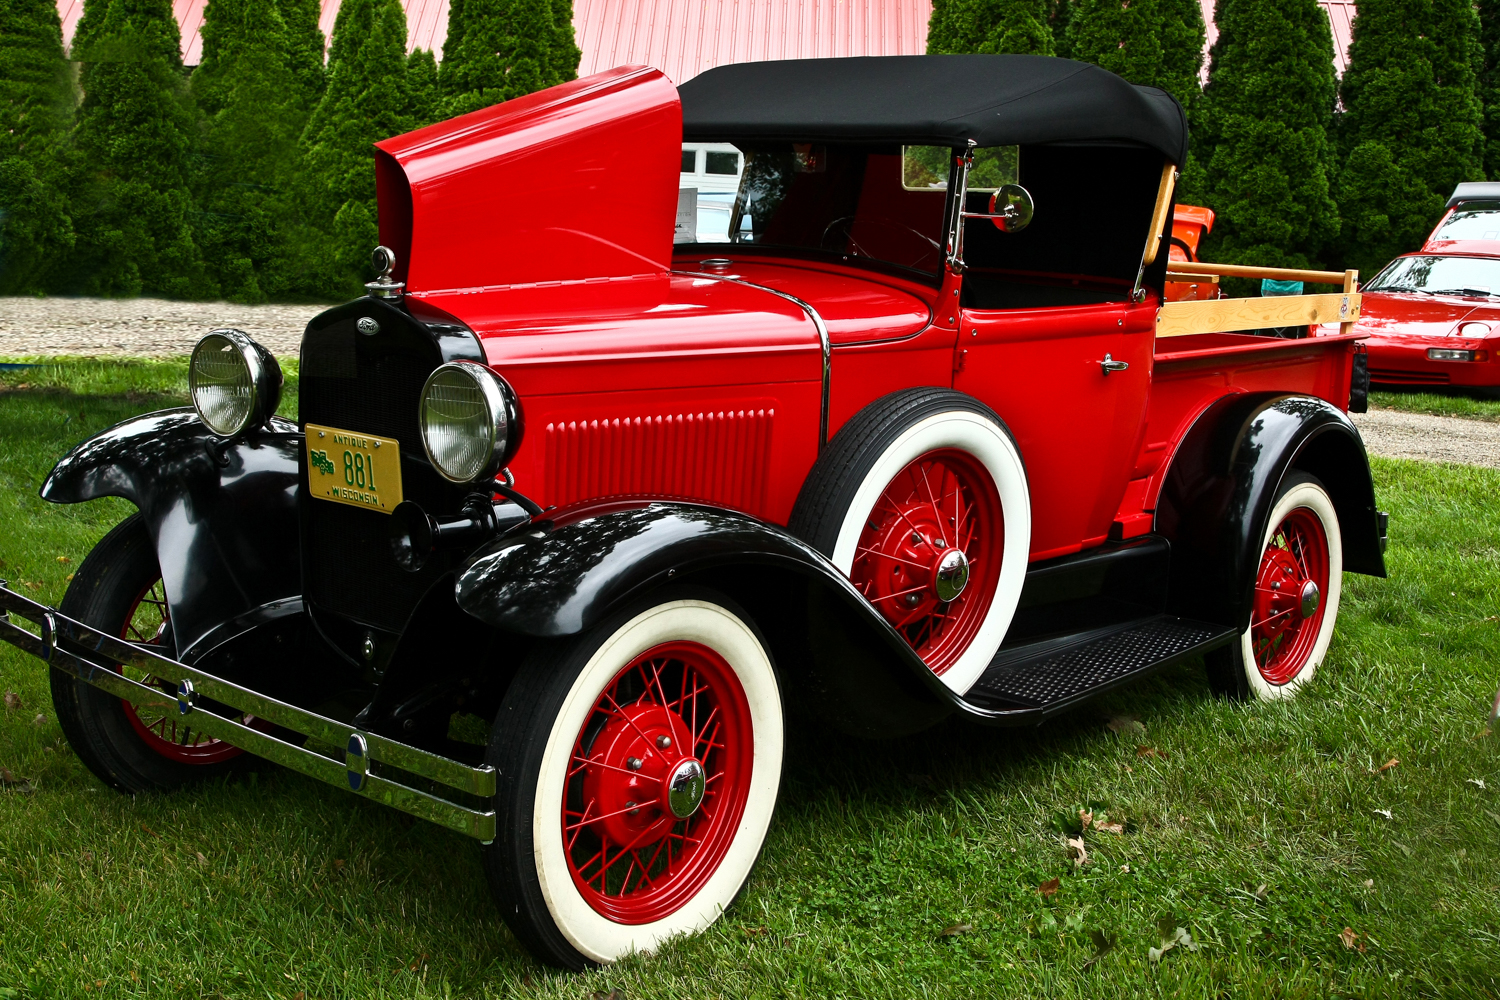 1931 Ford Roadster Truck - Don and Rita McCord - Fitchburg, WI j r schabowski